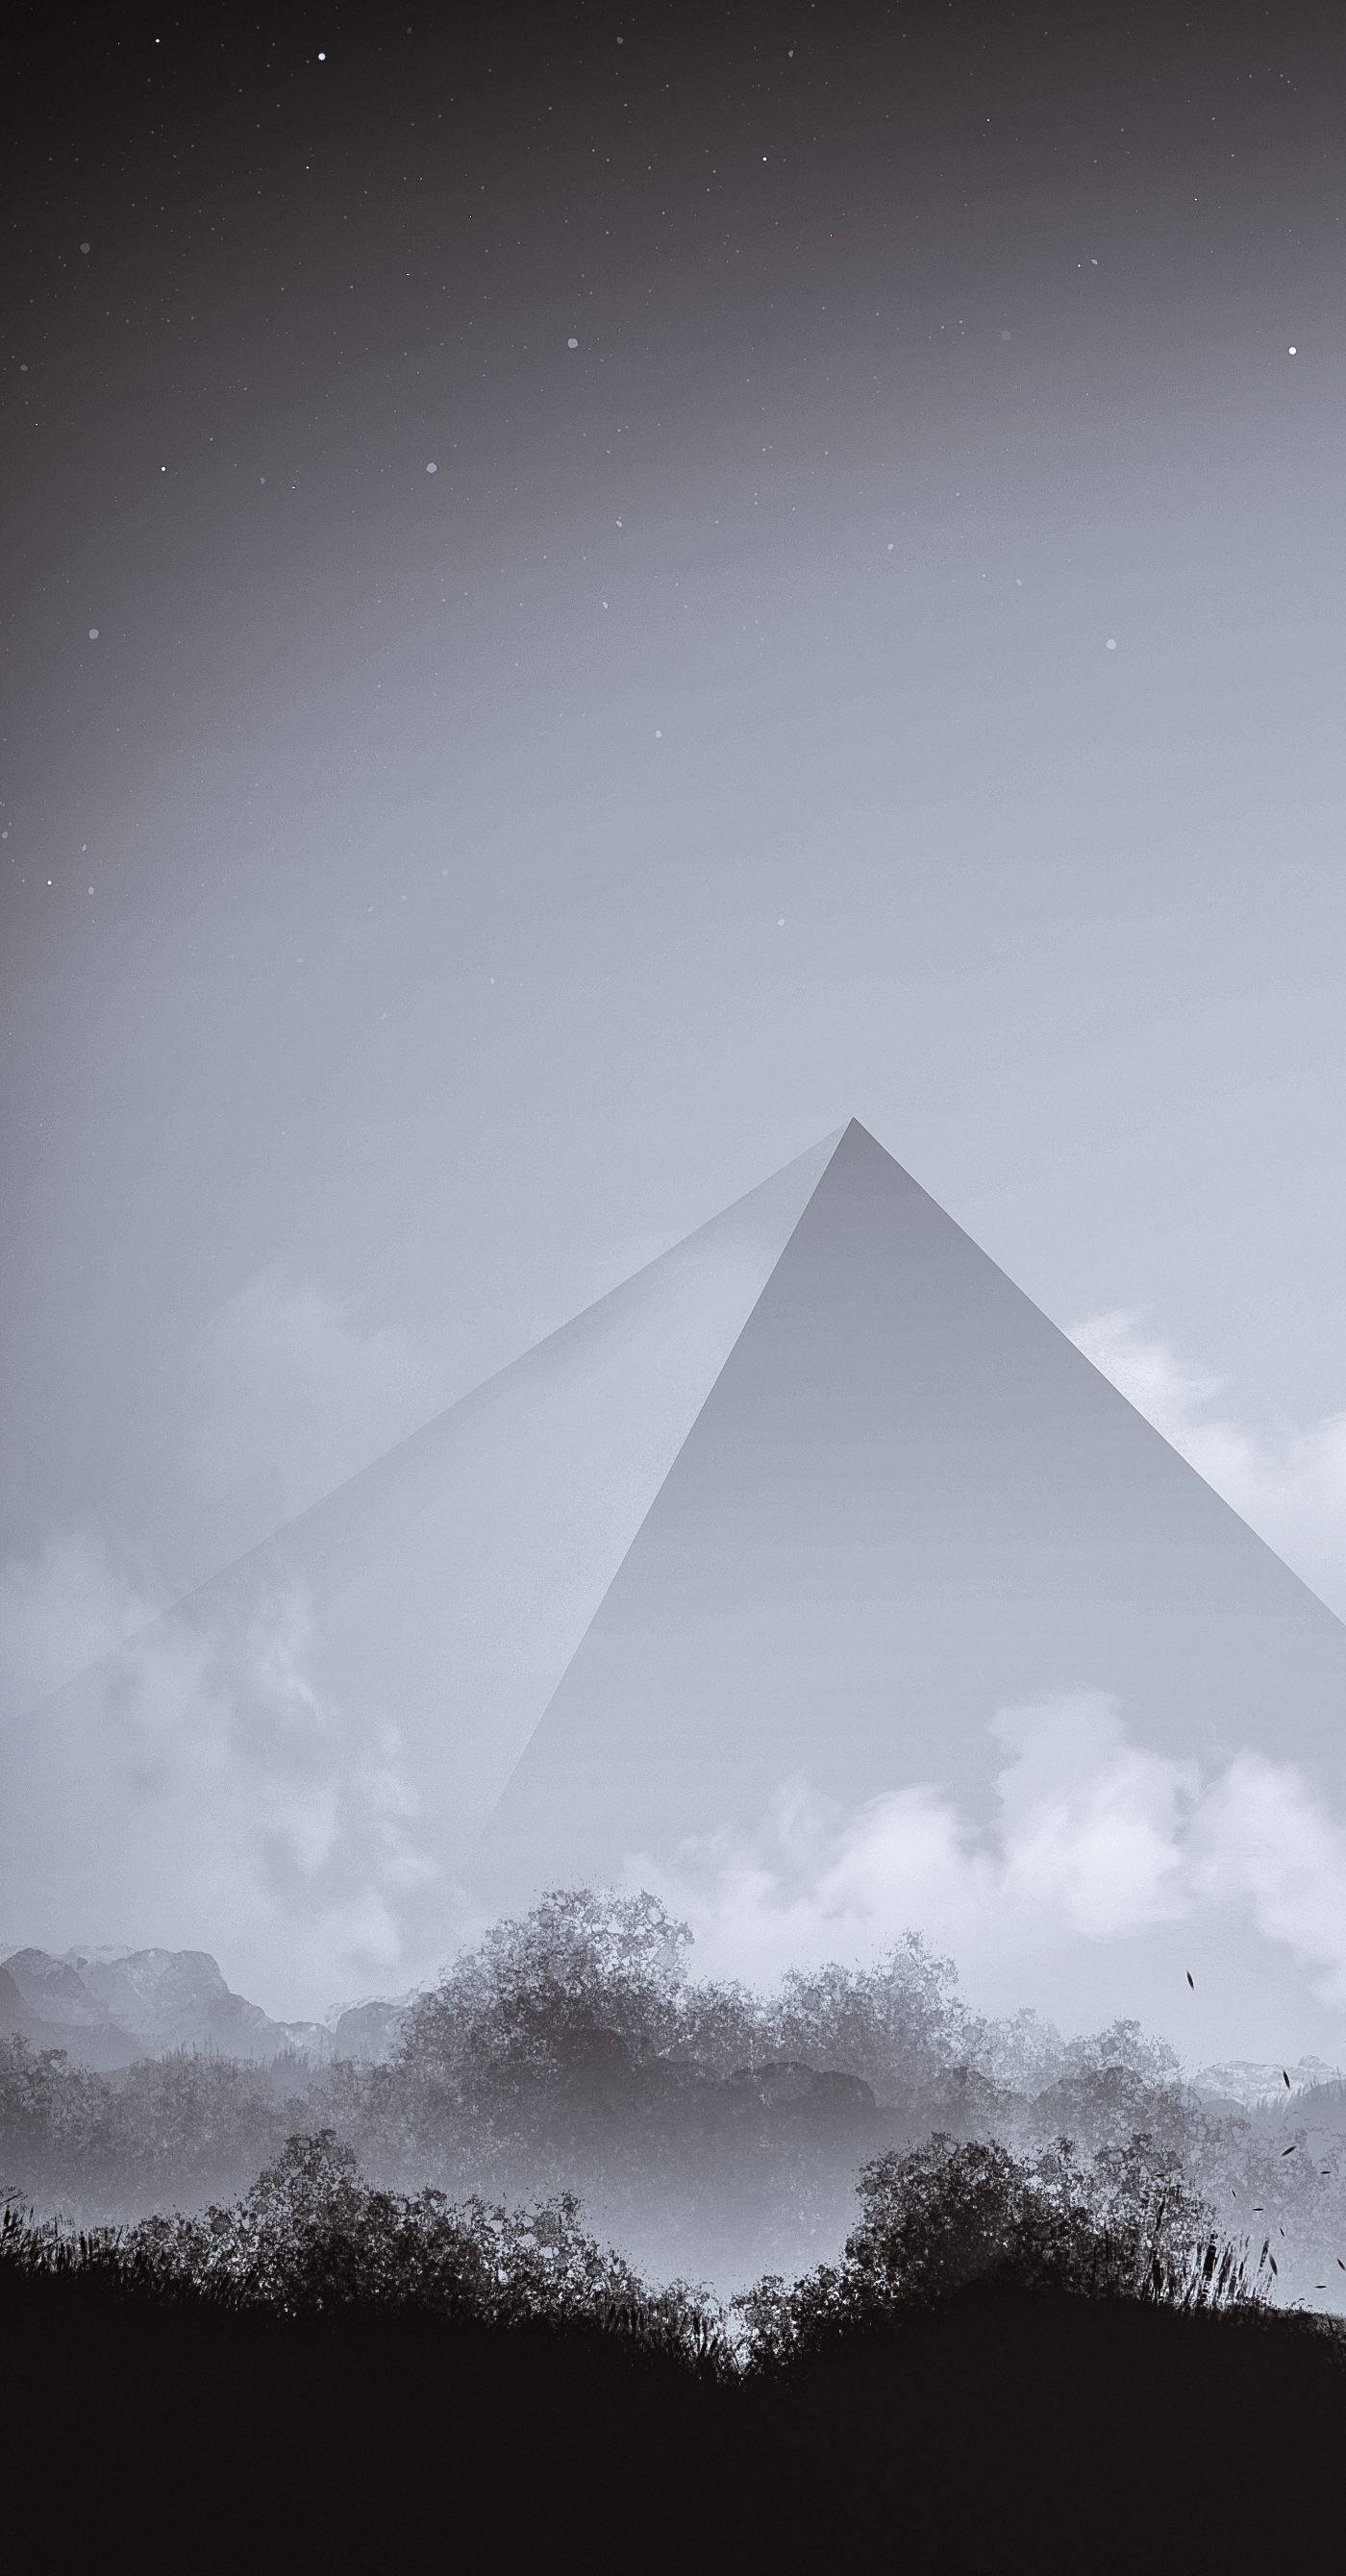 Landscape pyramid black and white monochrome clouds panorama stars SKY dark Painted lonely